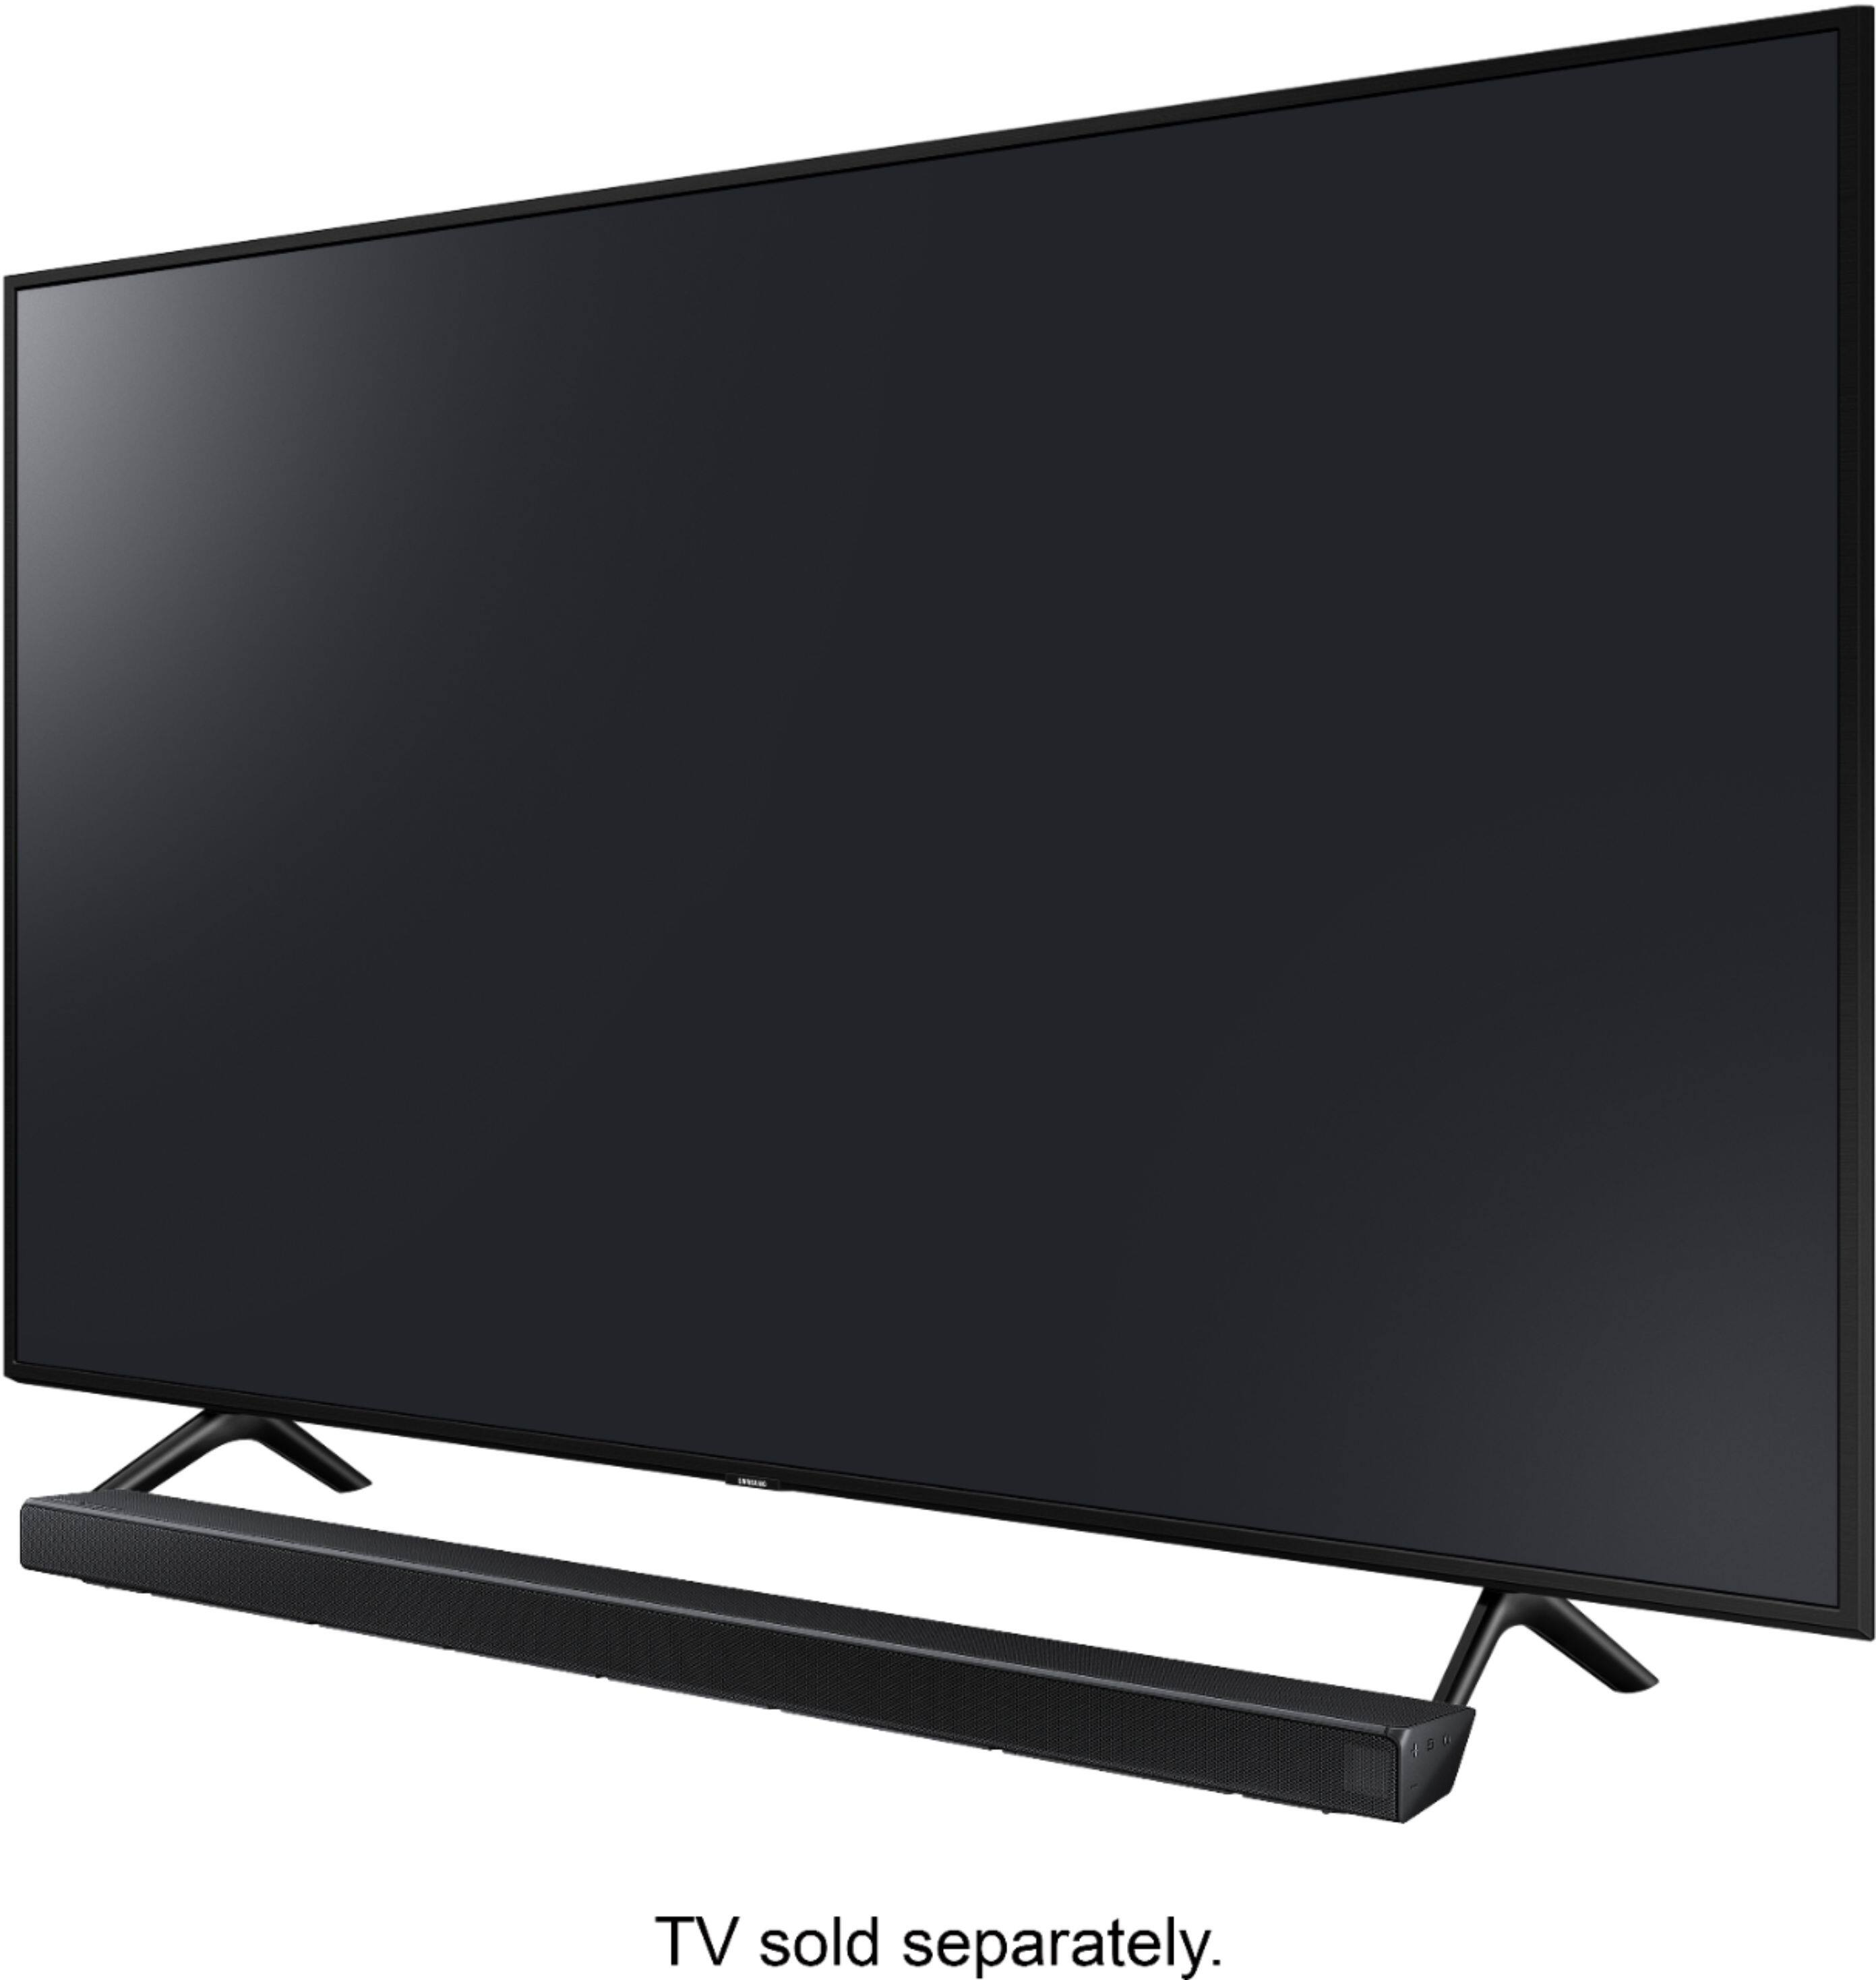 "Samsung 5.1-Channel 360W Soundbar System with 6-1/2"" Wireless Subwoofer Charcoal $419.99"